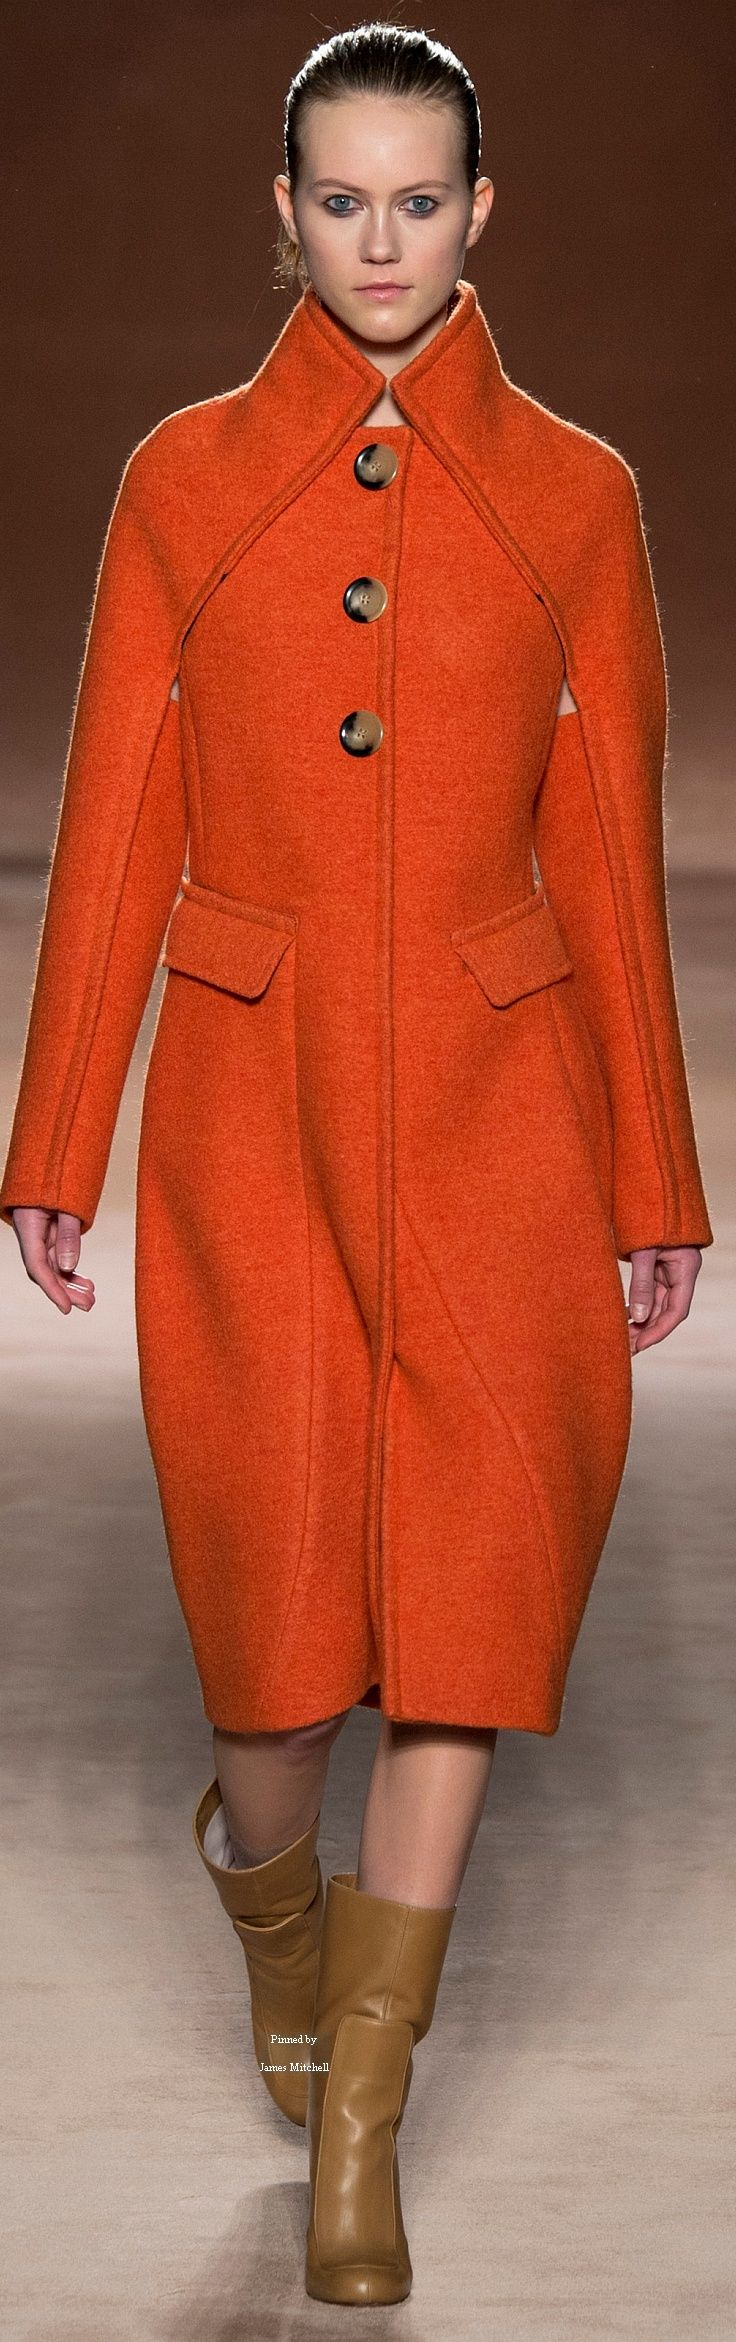 Victoria Beckham Collections Fall Winter 2015-16 collection: